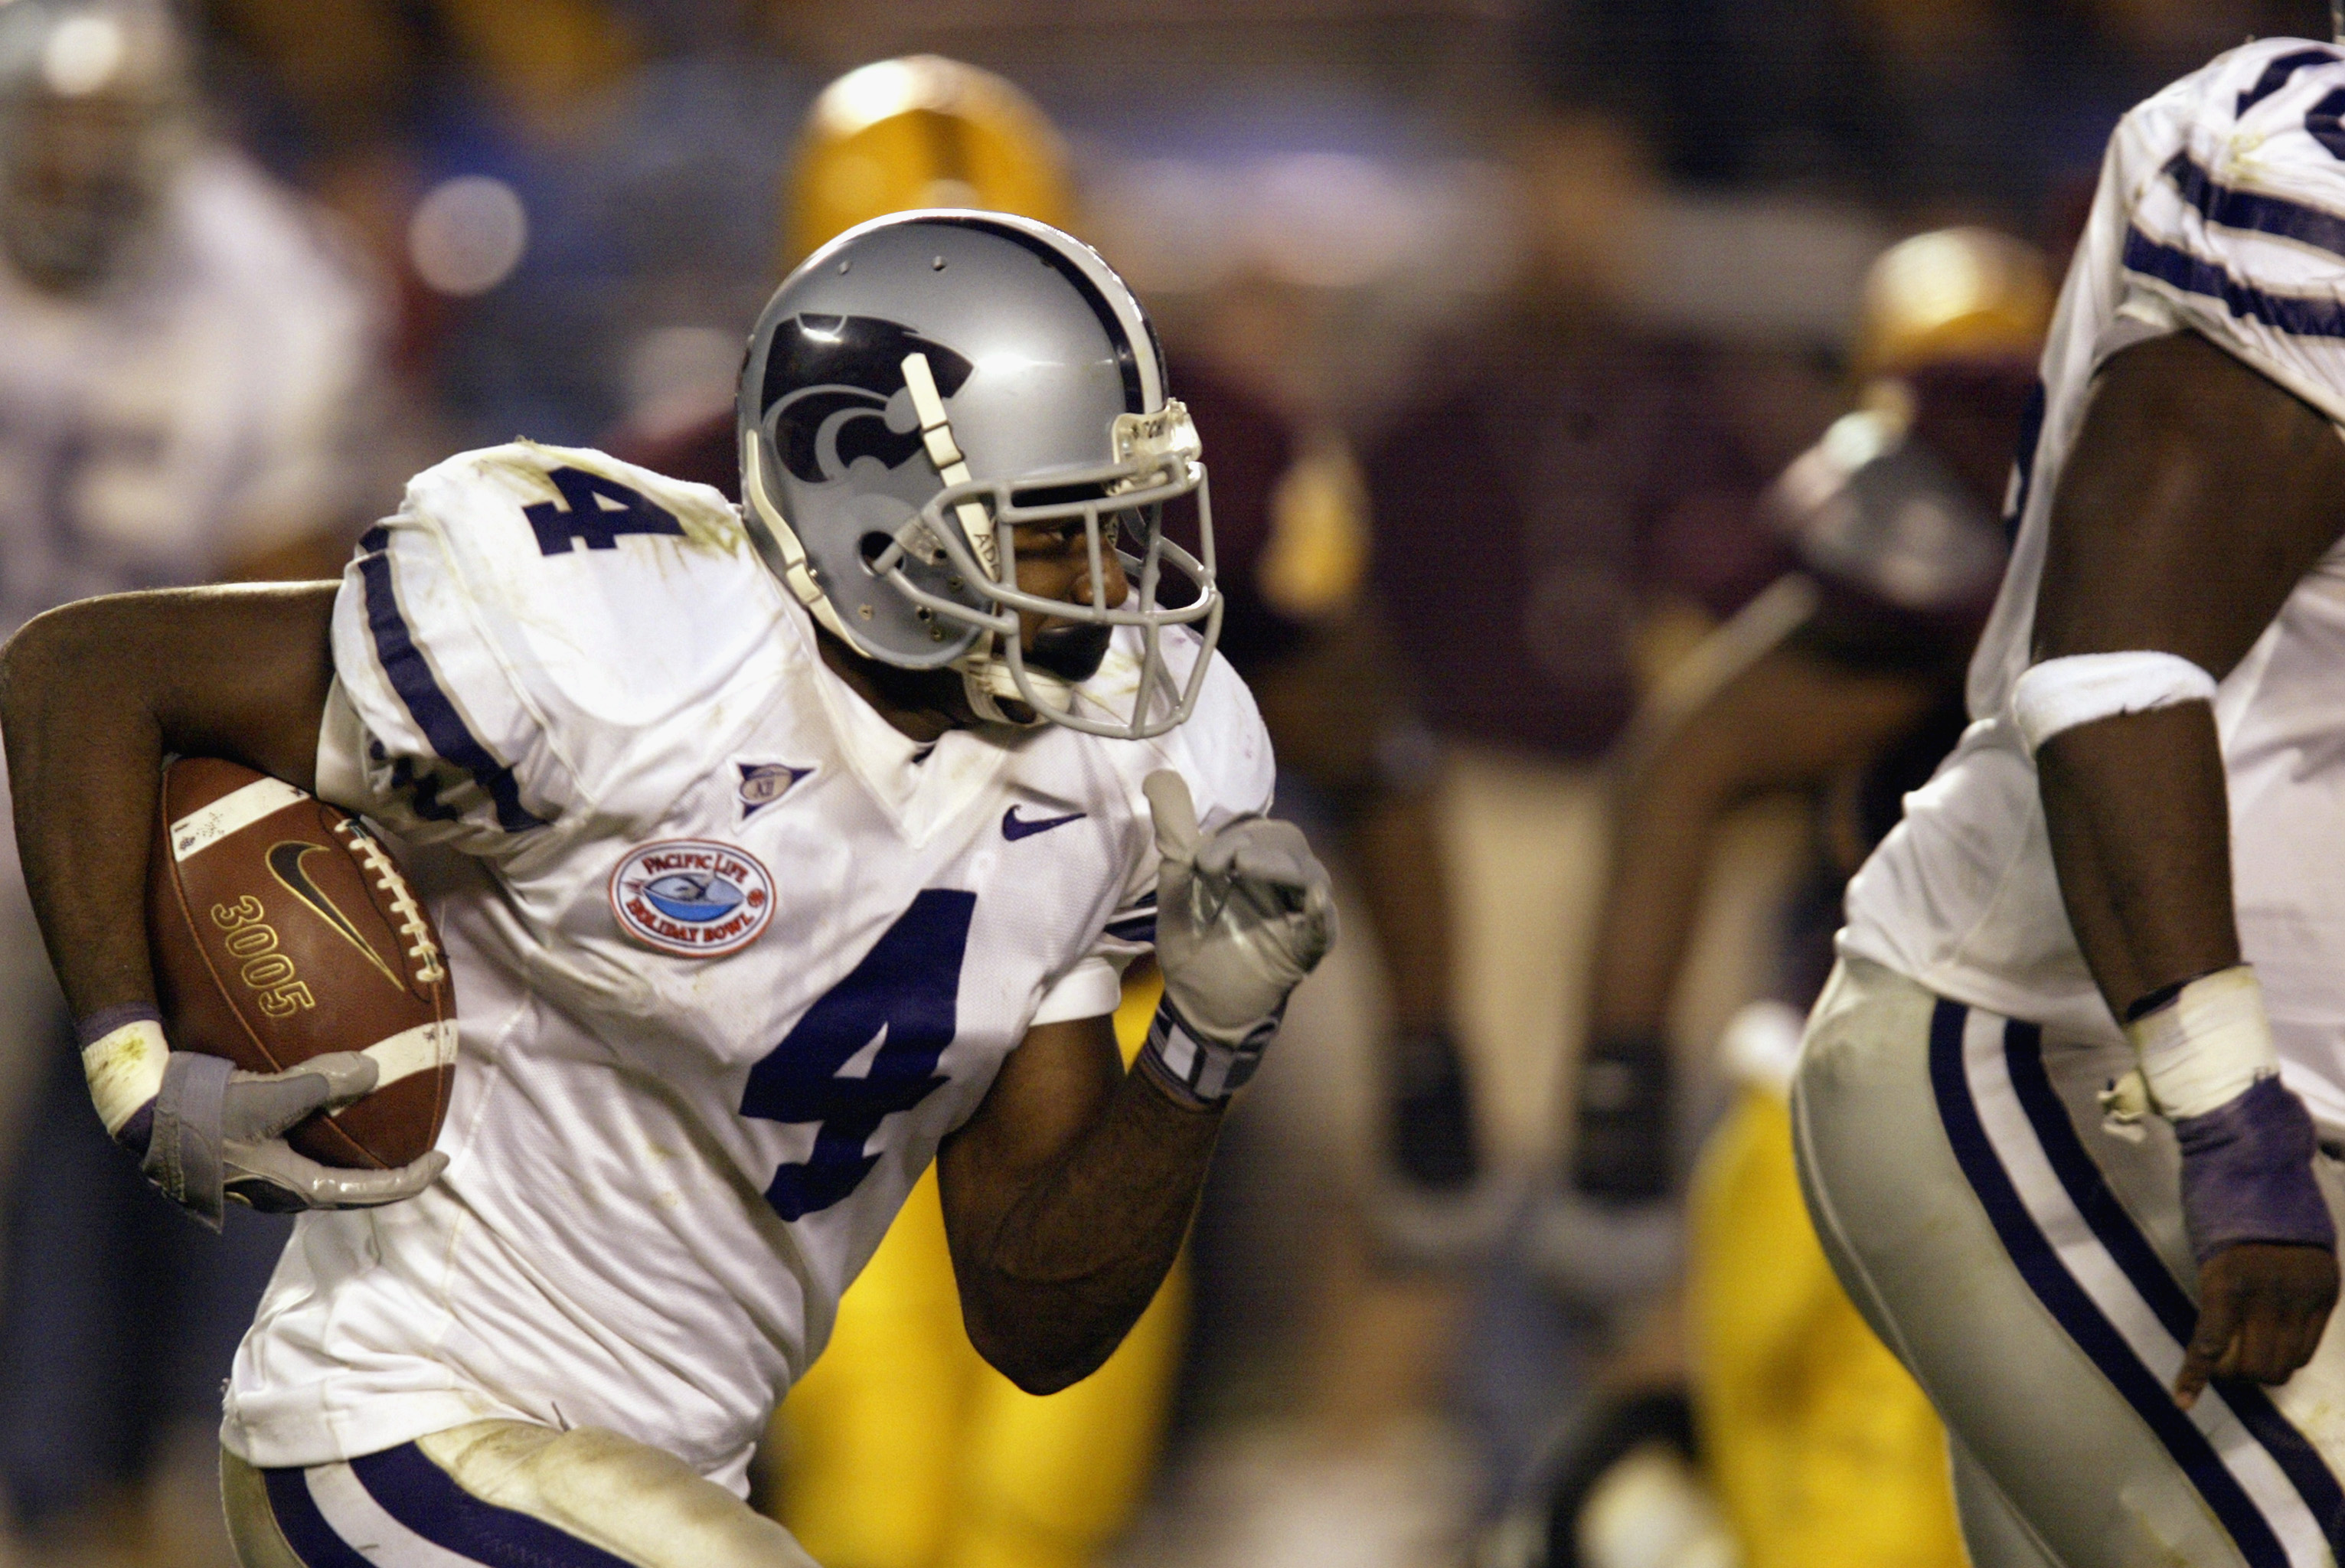 #4 Terence Newman